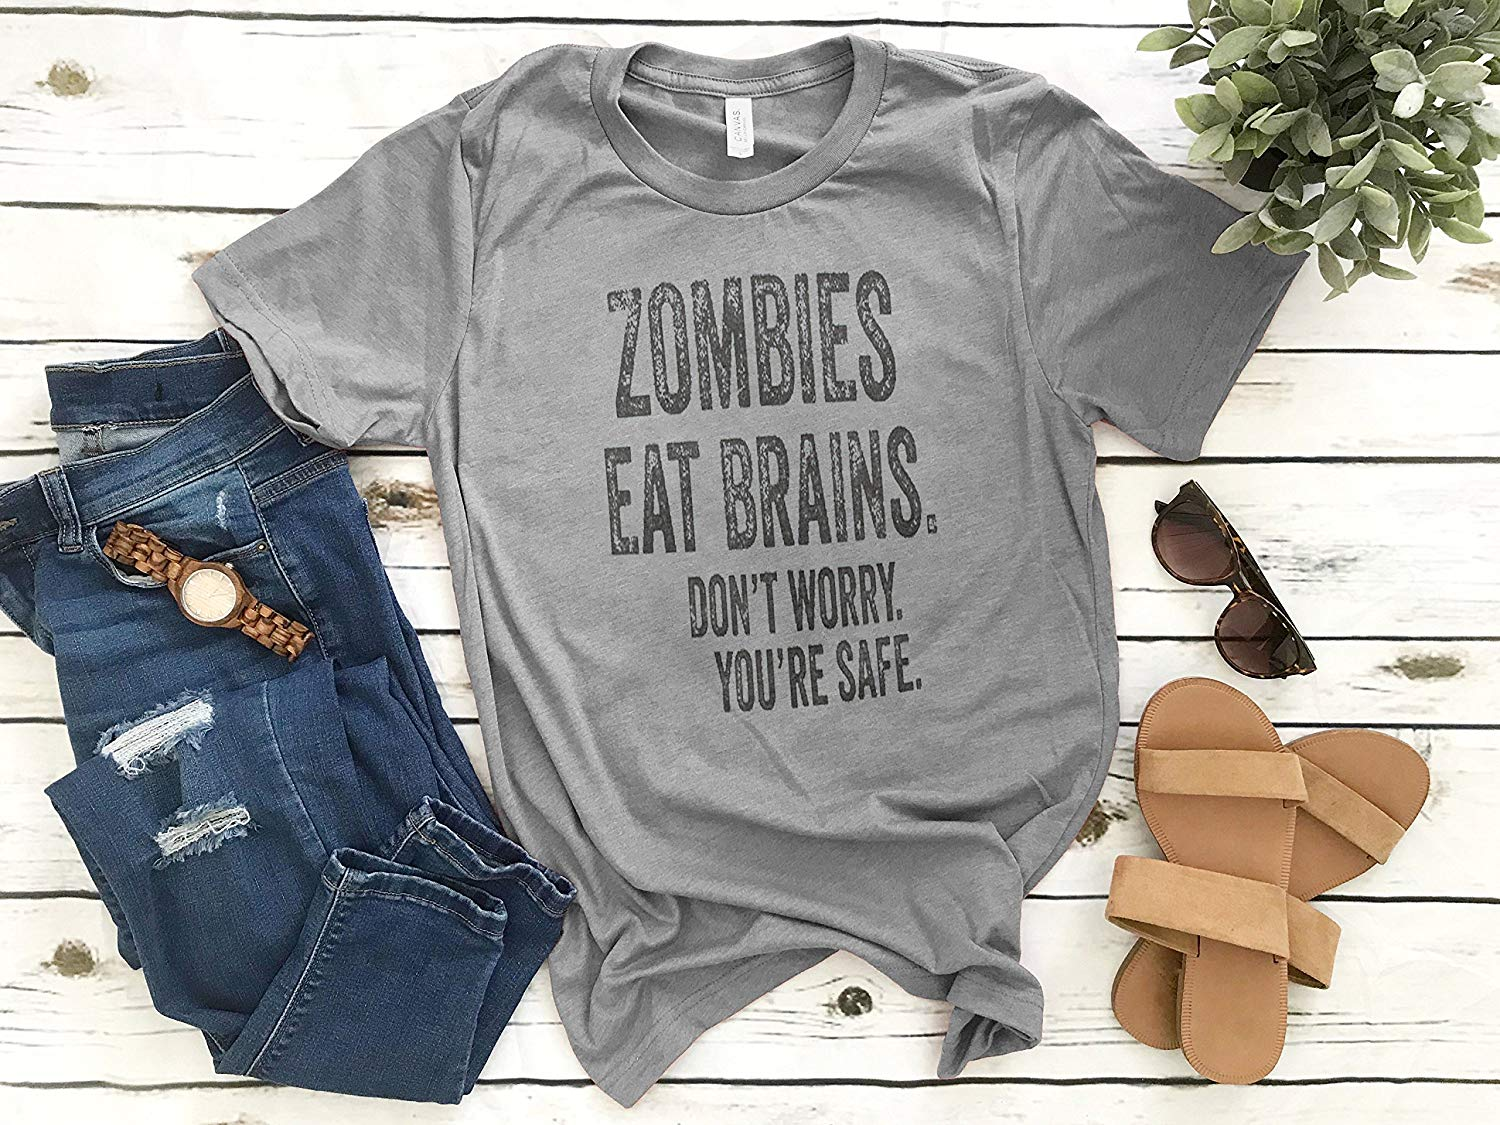 8faedc839 Get Quotations · Zombies Eat Brains Don't Worry You're Safe T-shirt, Ladies